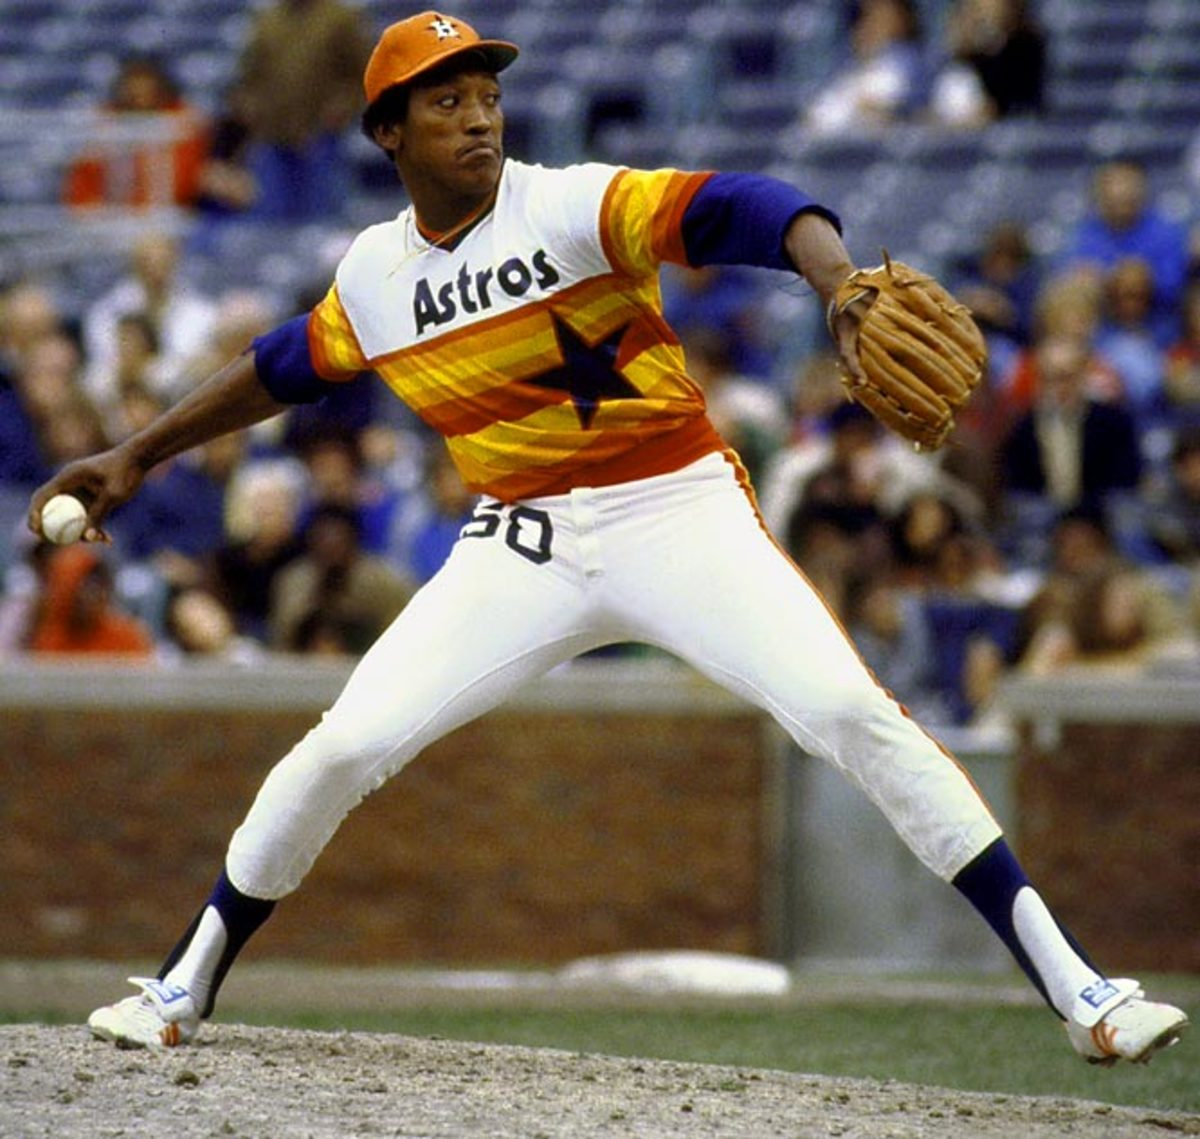 The Astros uniforms of the late '70s and early '80s